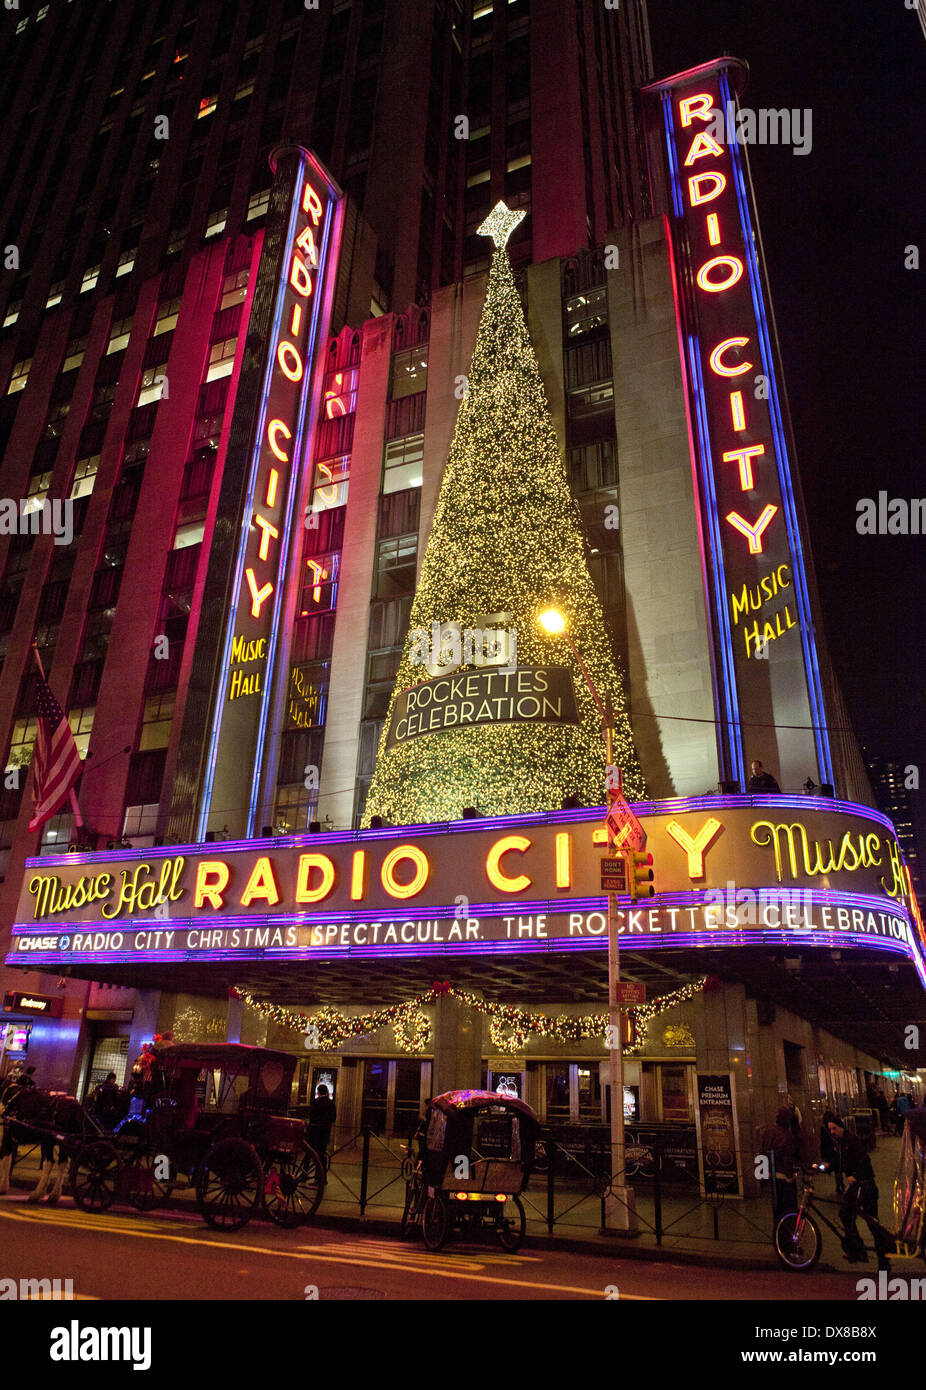 atmosphere radio city christmas spectacular opening night at radio city music hall featuring atmosphere where - How Long Is The Radio City Christmas Show